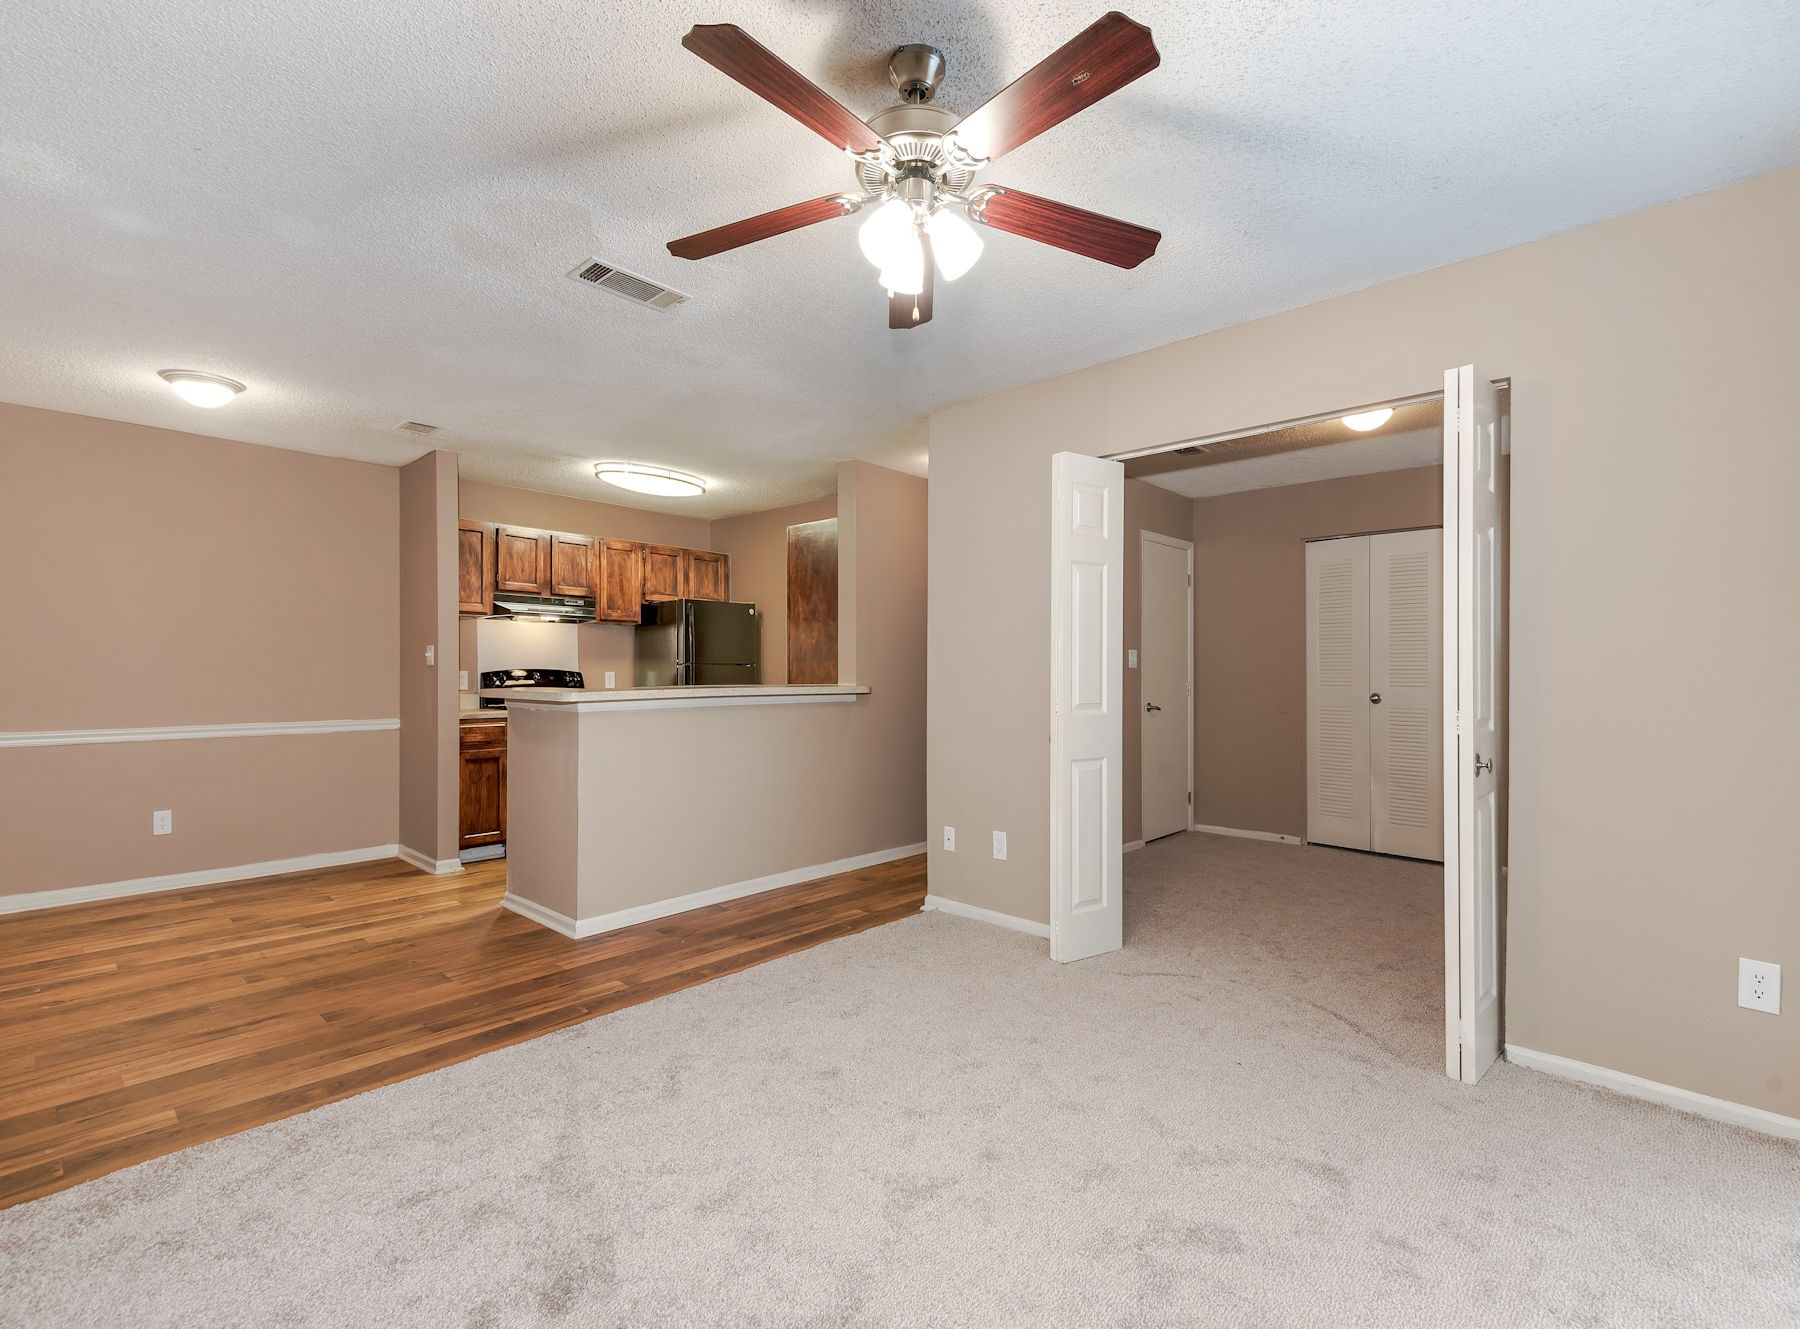 Model Living Area With Carpet And Ceiling Fan